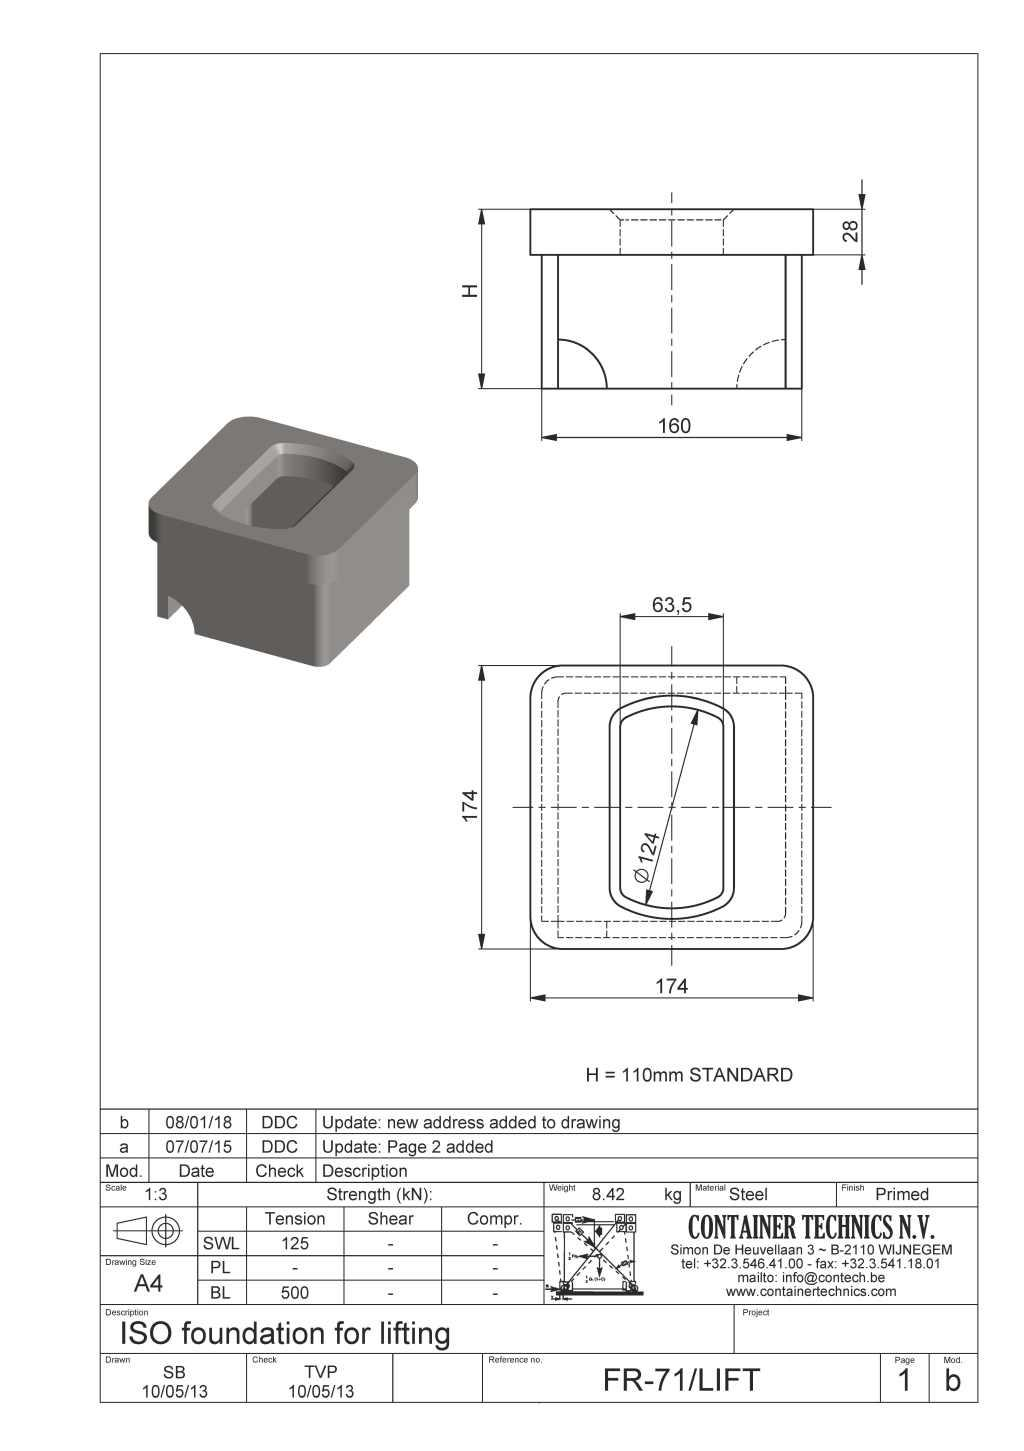 FR-71/LIFT lifting ISO socket